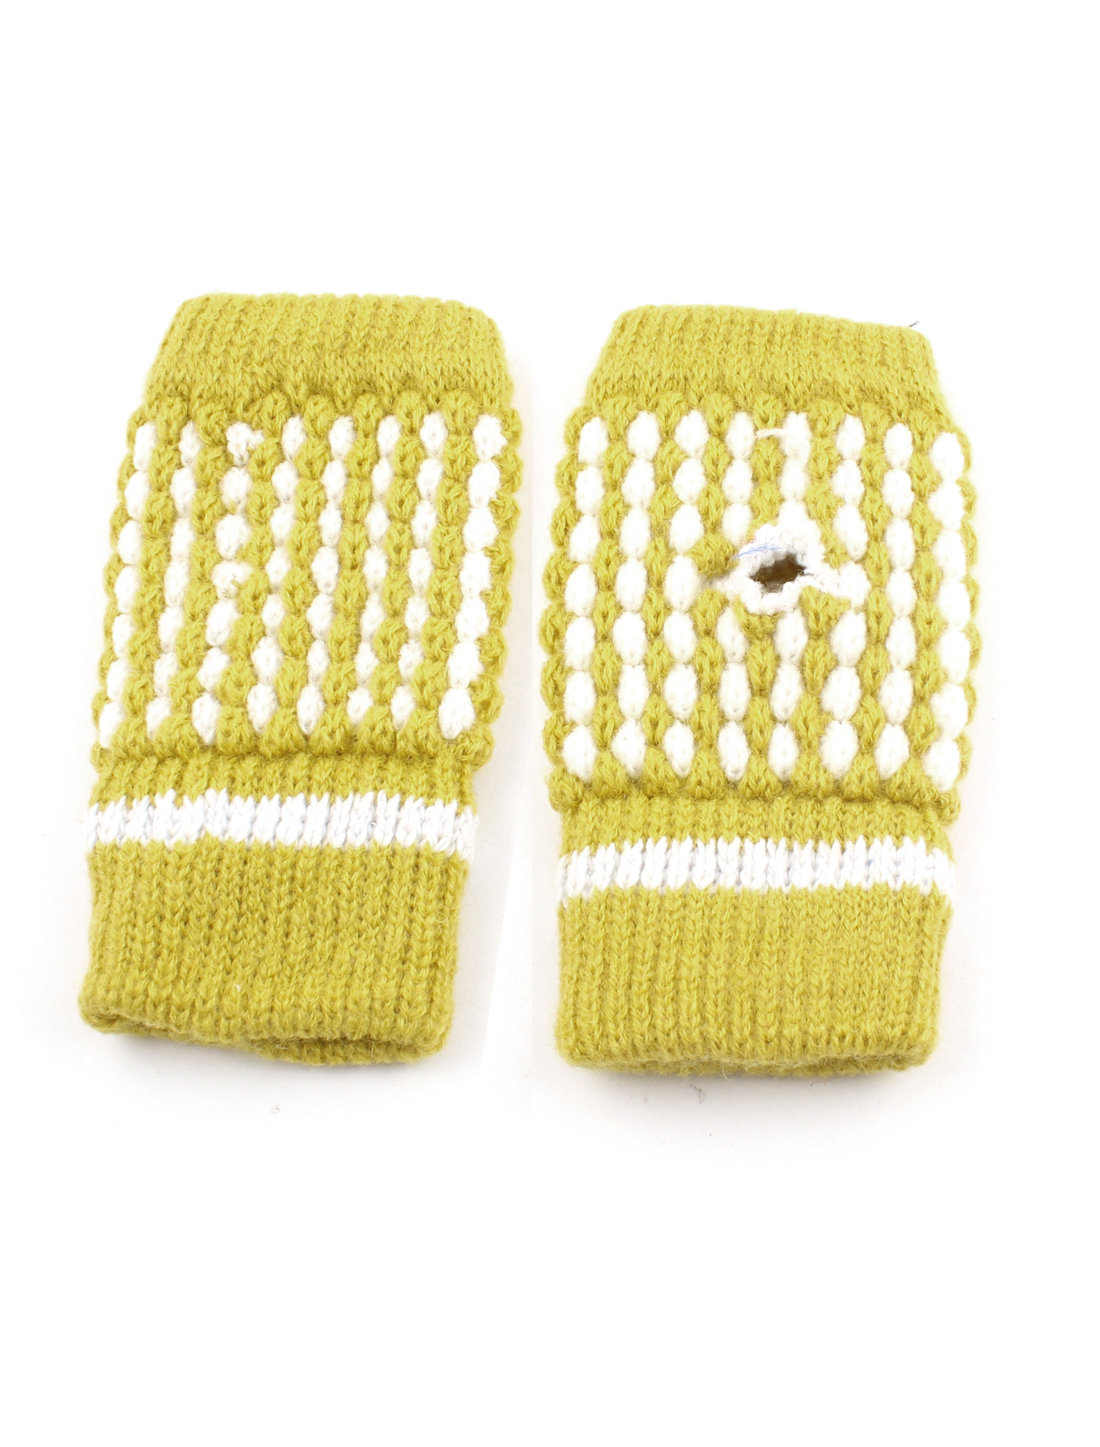 Women Lady Winter Stretchy Cuff Wrist Hand Warmer Fingerless Gloves Yellow Pair